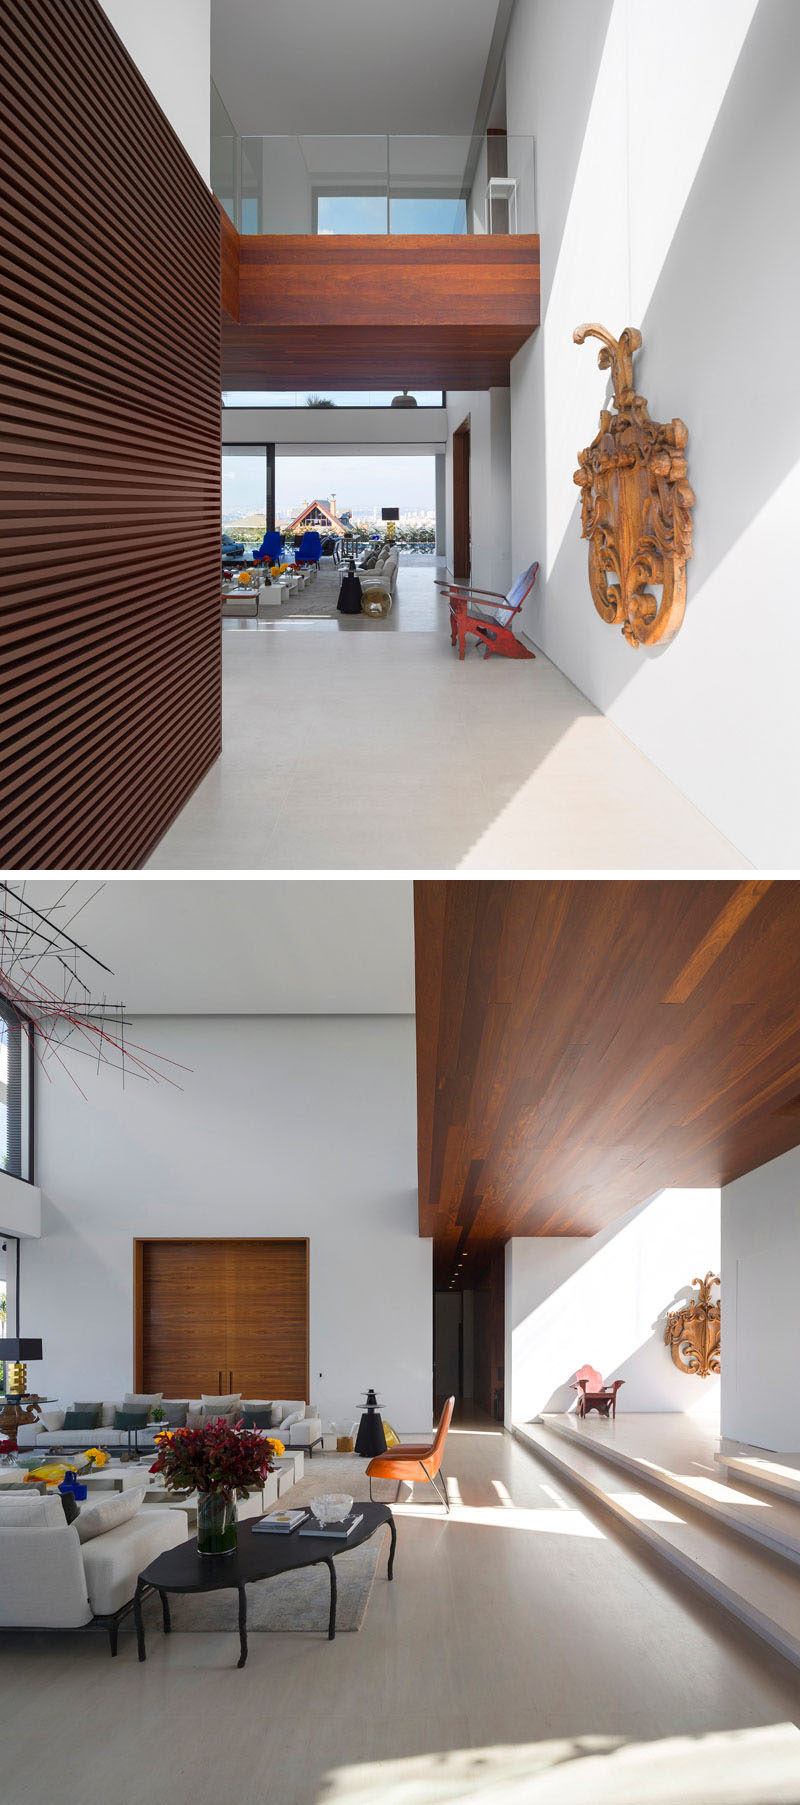 The entry way of this home reveals a double height ceiling, white walls and wood detailing.